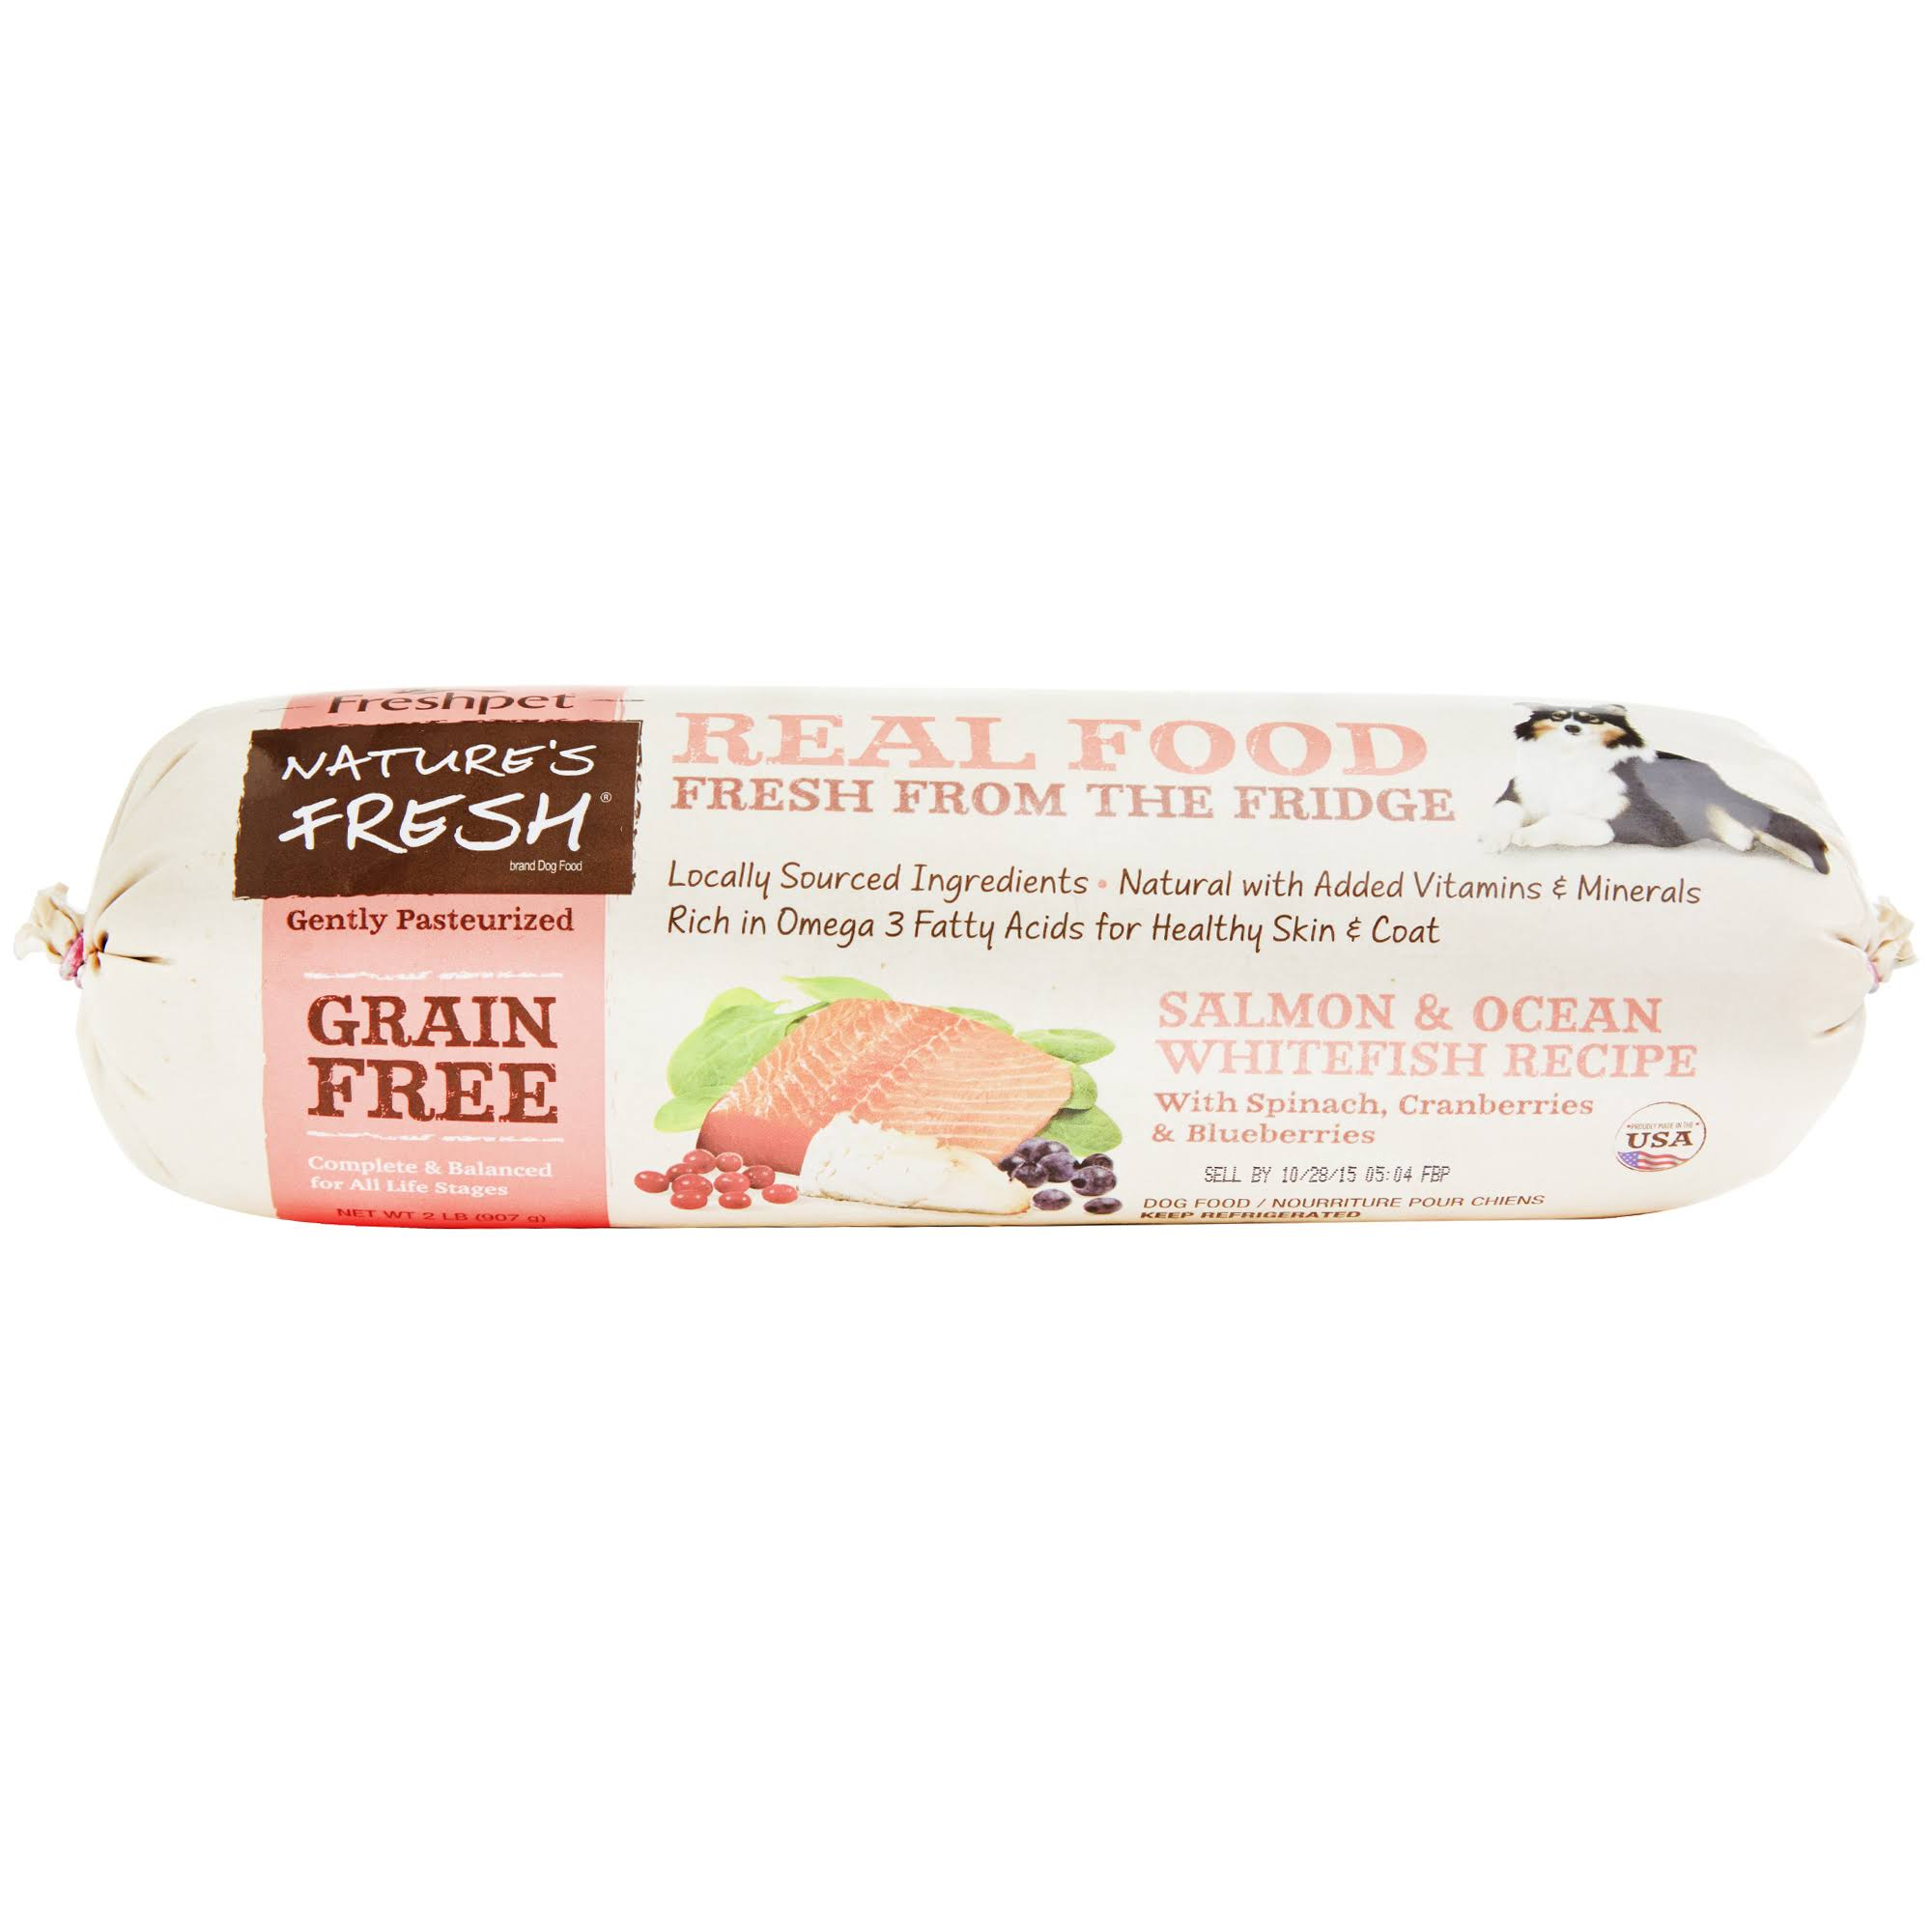 Natures Fresh KHCH00088477 Dog Grain Free Salmon & Ocean White Fish Spinach Cranberry 2 lbs